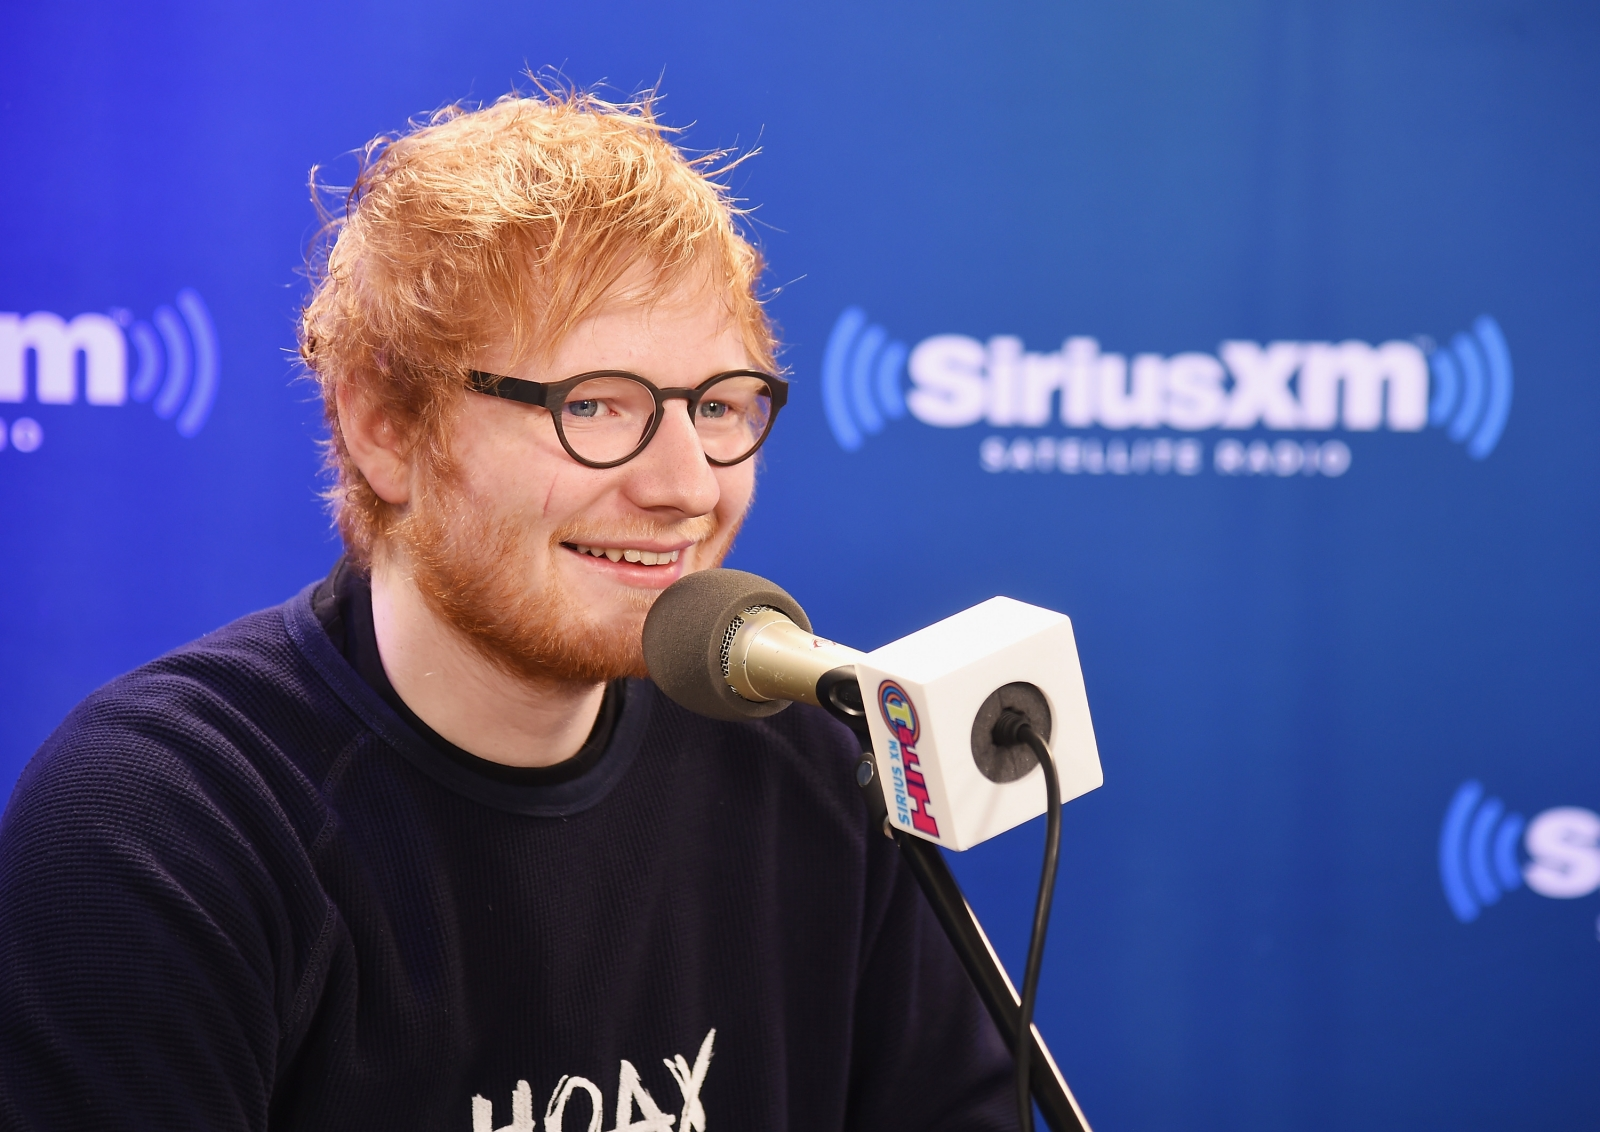 Ed Sheeran confesses to whacking Justin Bieber in the face with a golf club